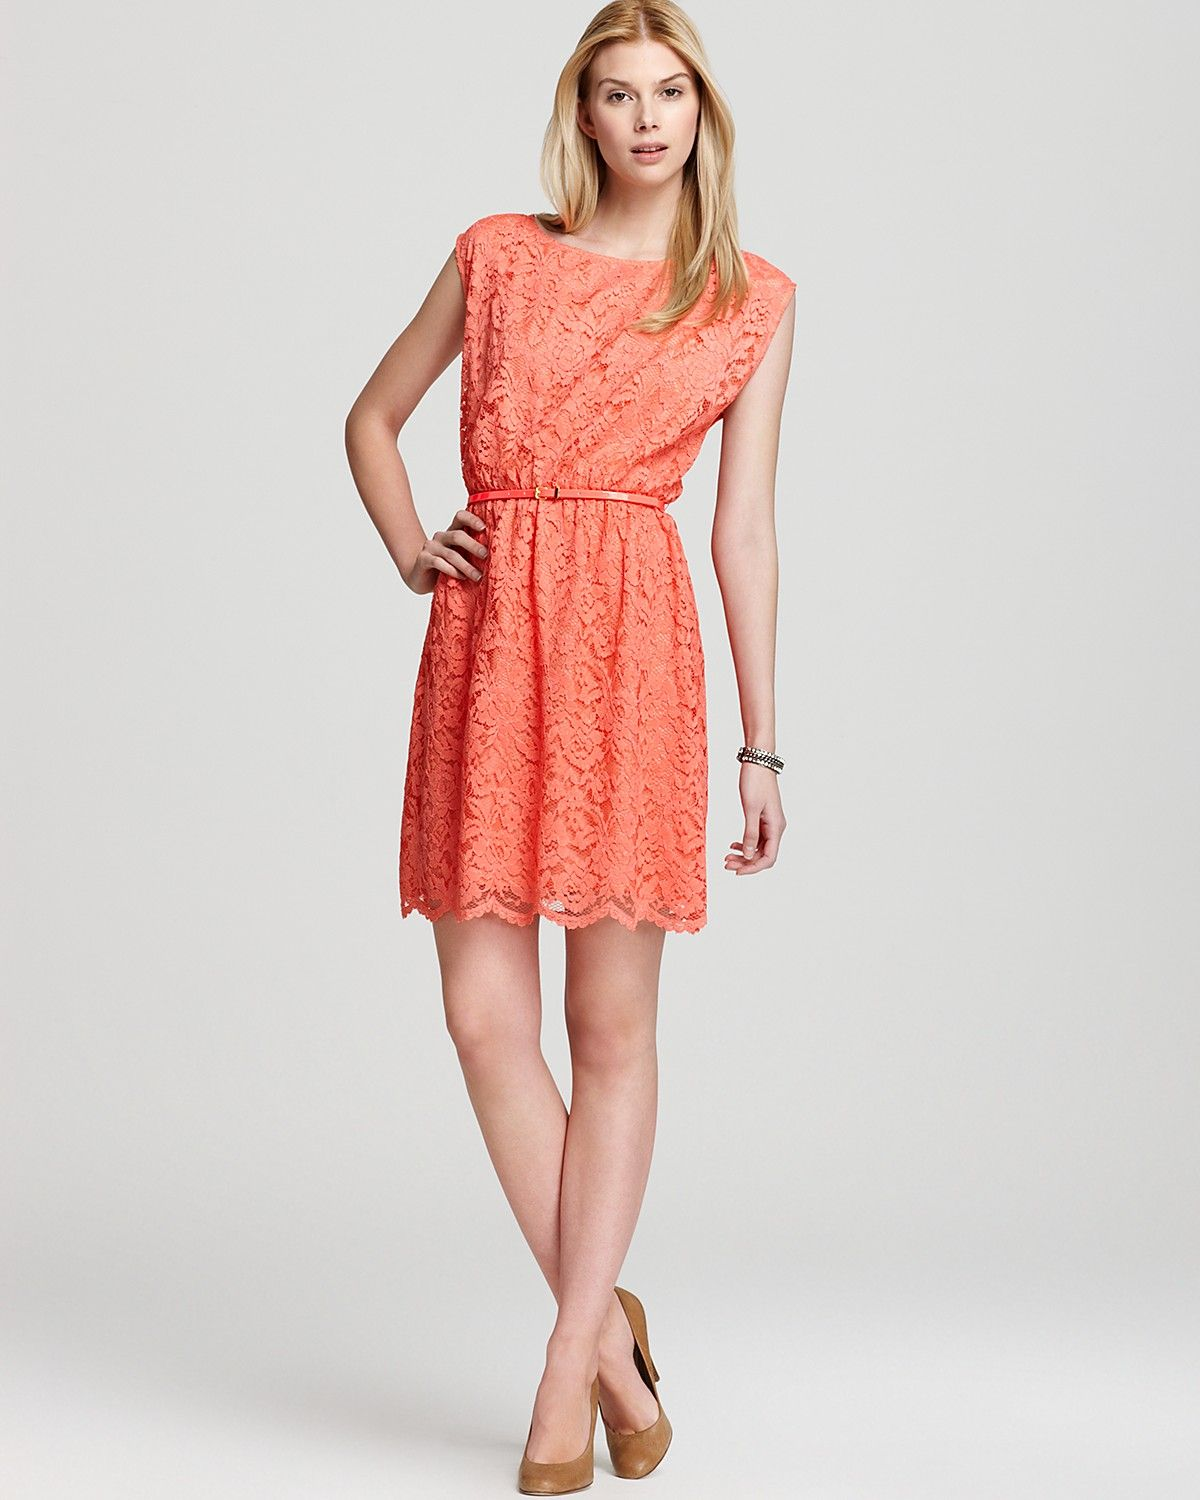 VINCE CAMUTO Lace Dress with Belt | Bloomingdale's